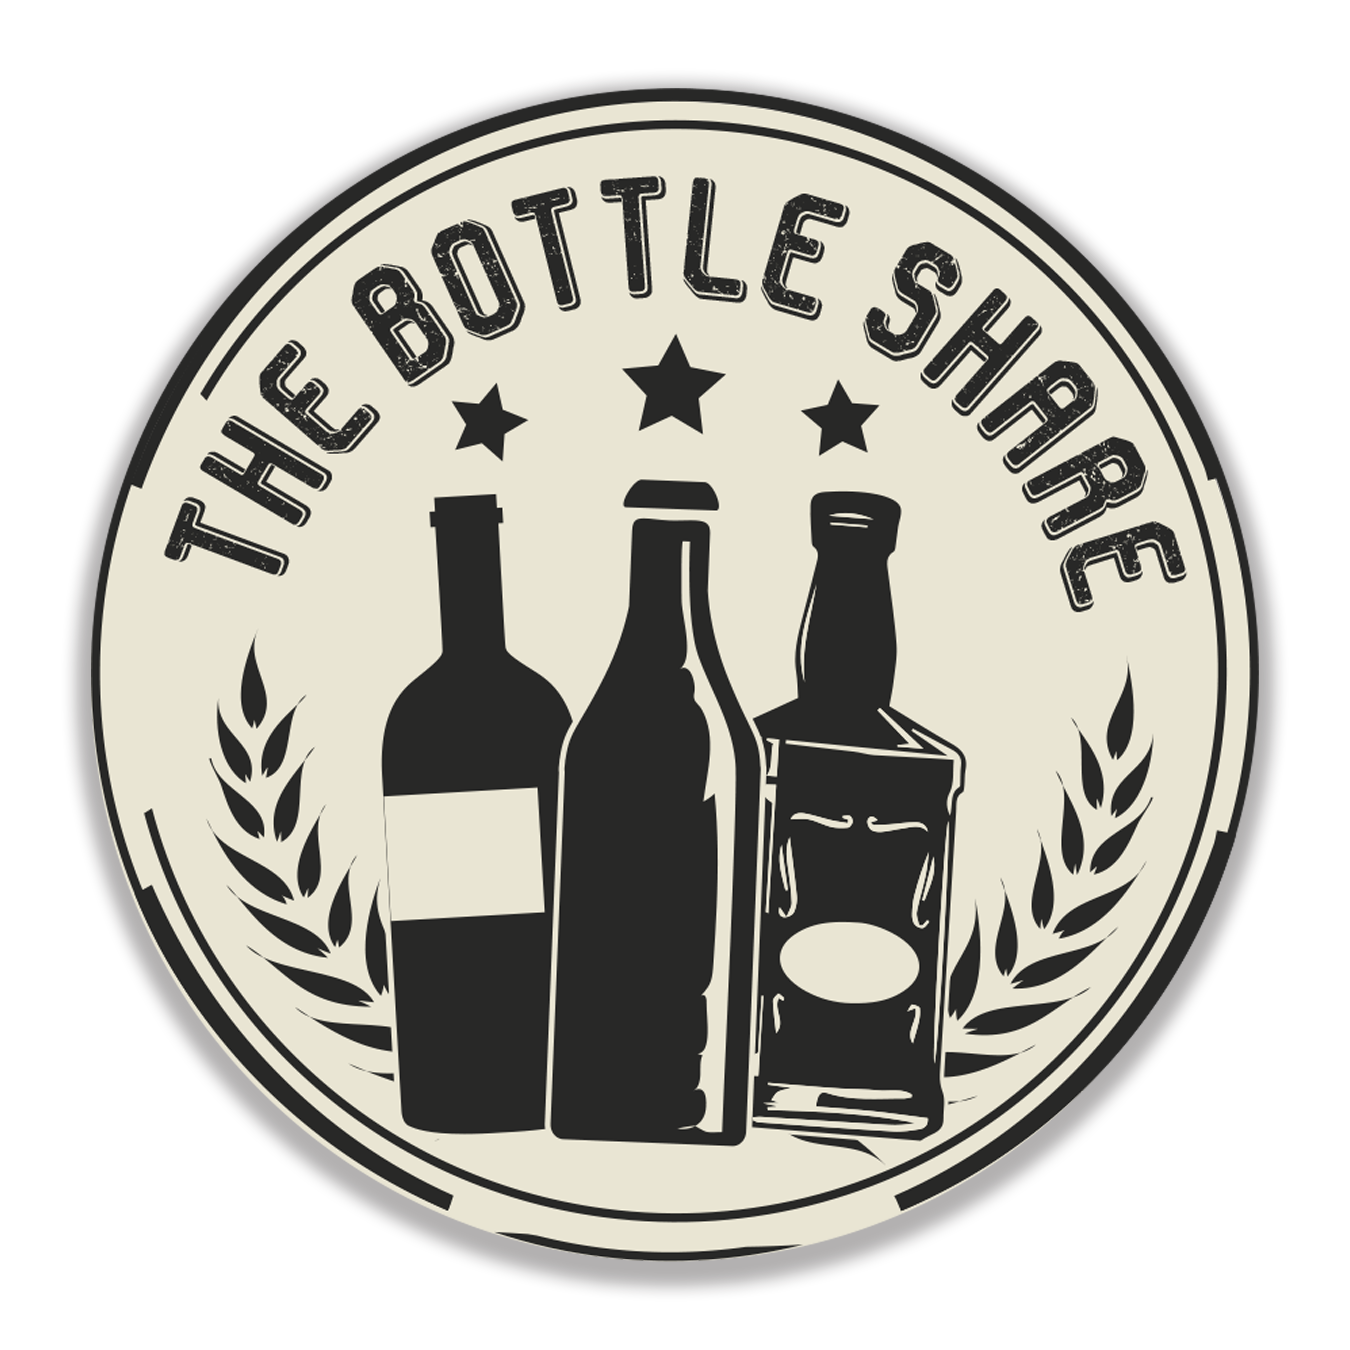 The Bottle Share, Inc.